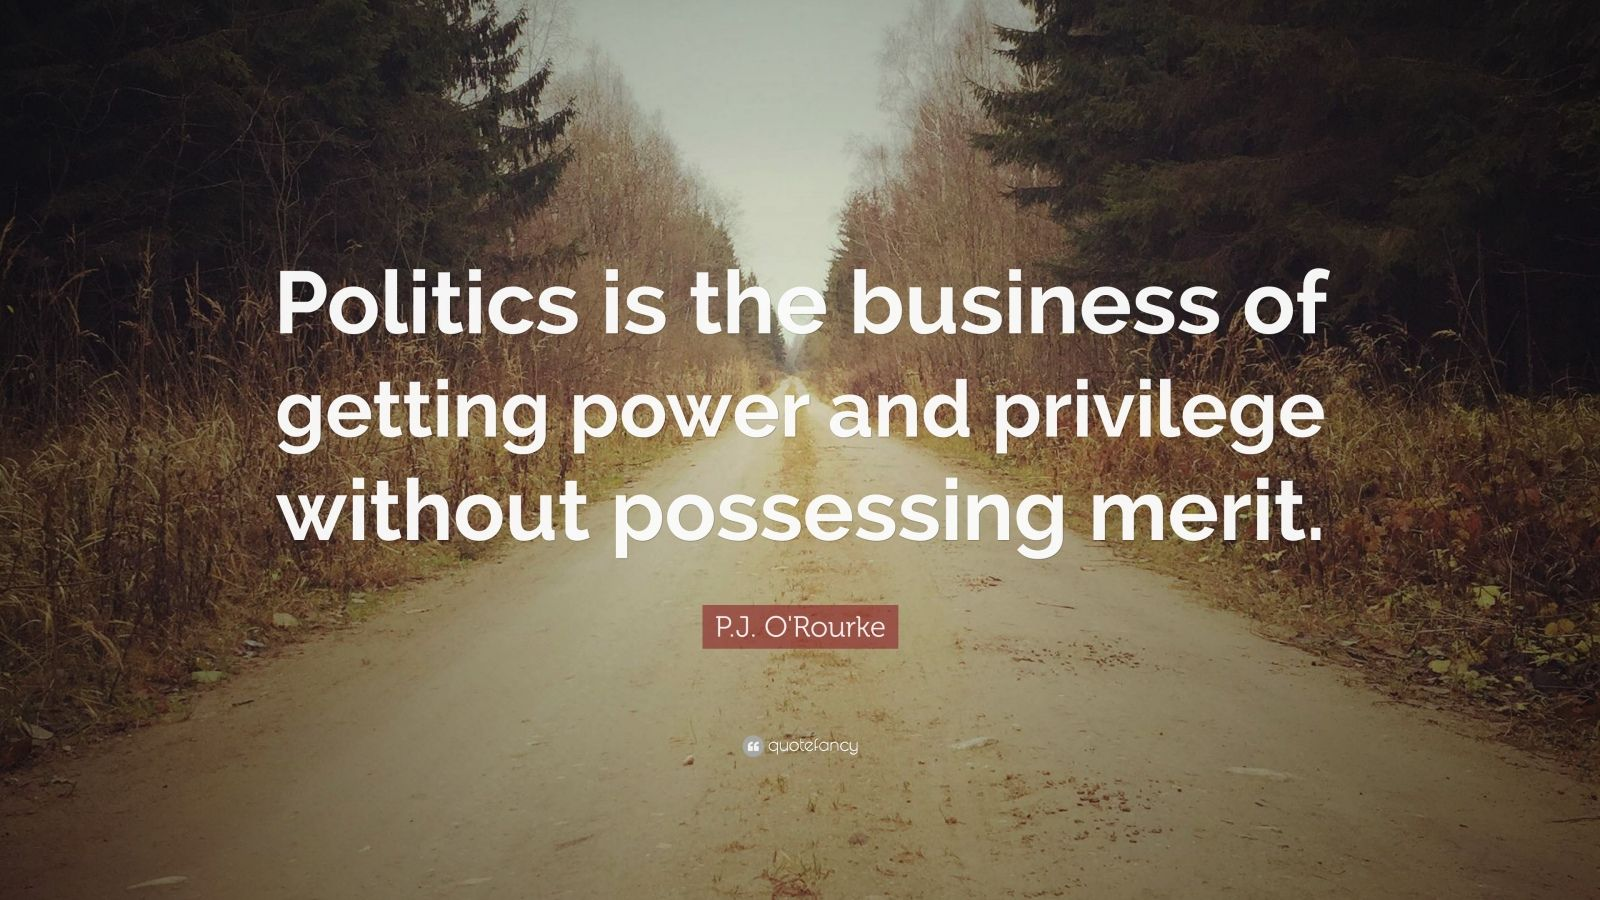 """P.J. O'Rourke Quote: """"Politics is the business of getting power and privilege without possessing merit."""""""